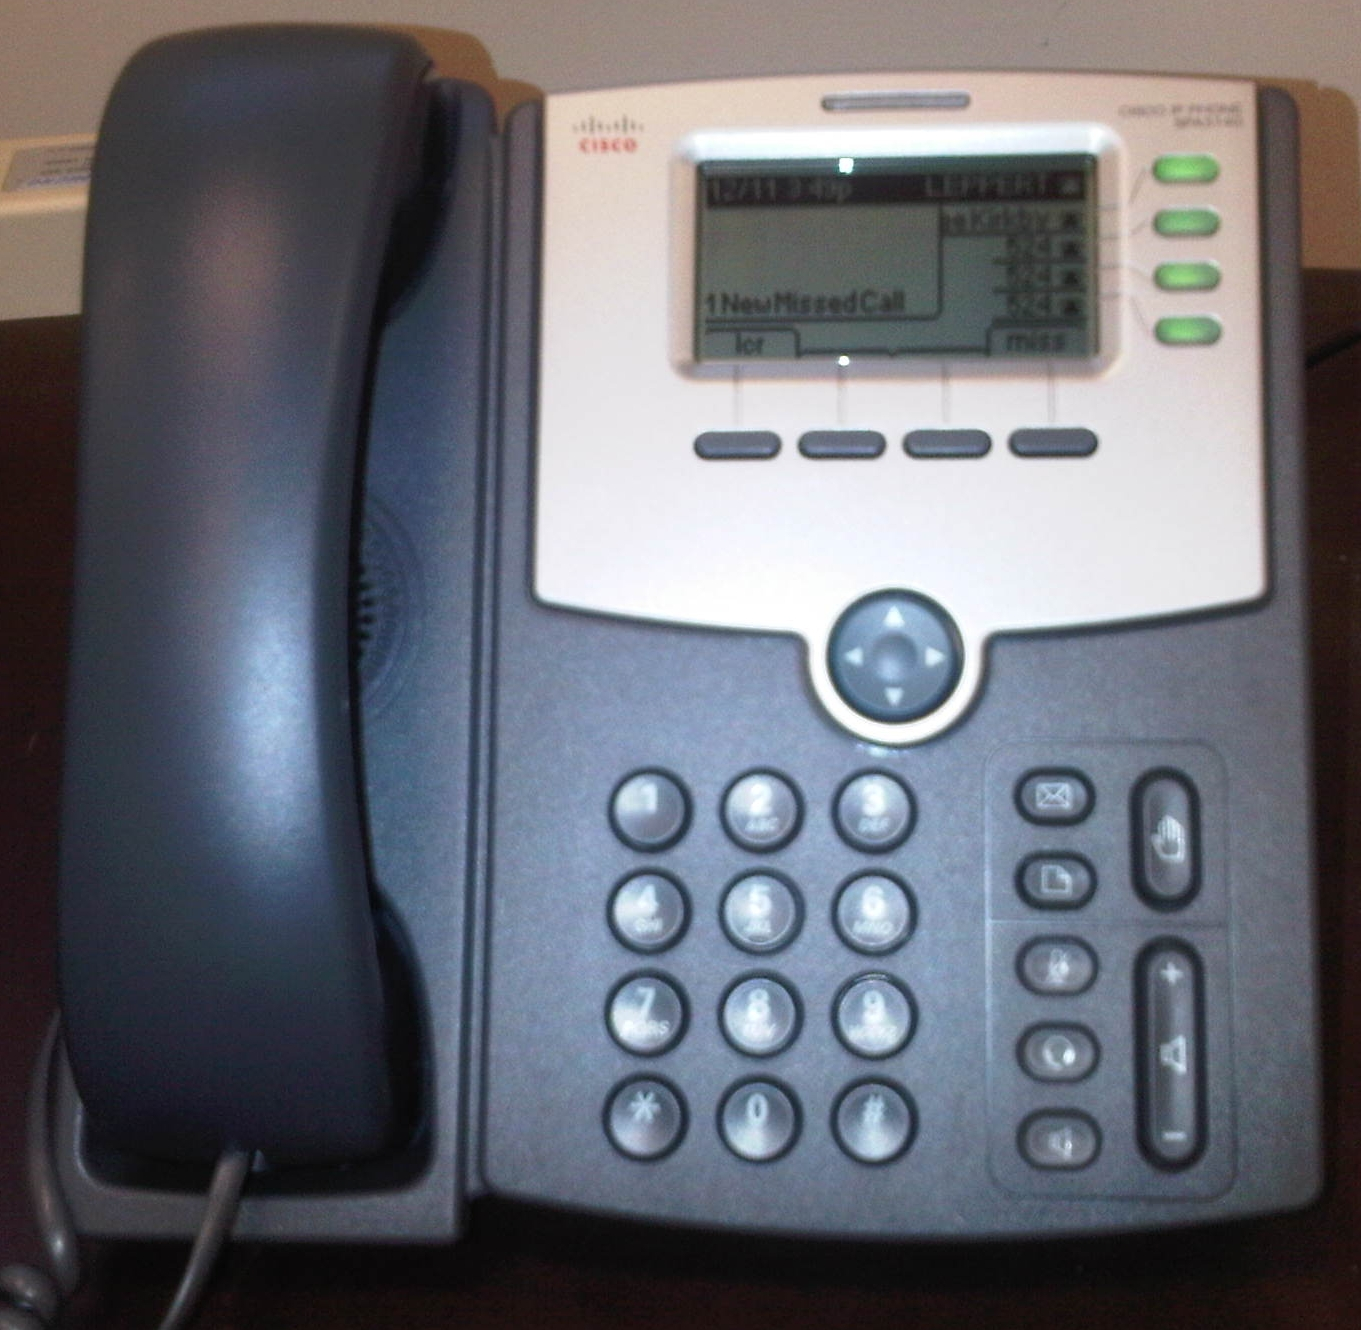 hook up voip phone Forum discussion: ok this may not be quite a &quotefaq for running voip from a wireless connection&quote, but it does collect the answers to my own frequently asked questions on the topic.